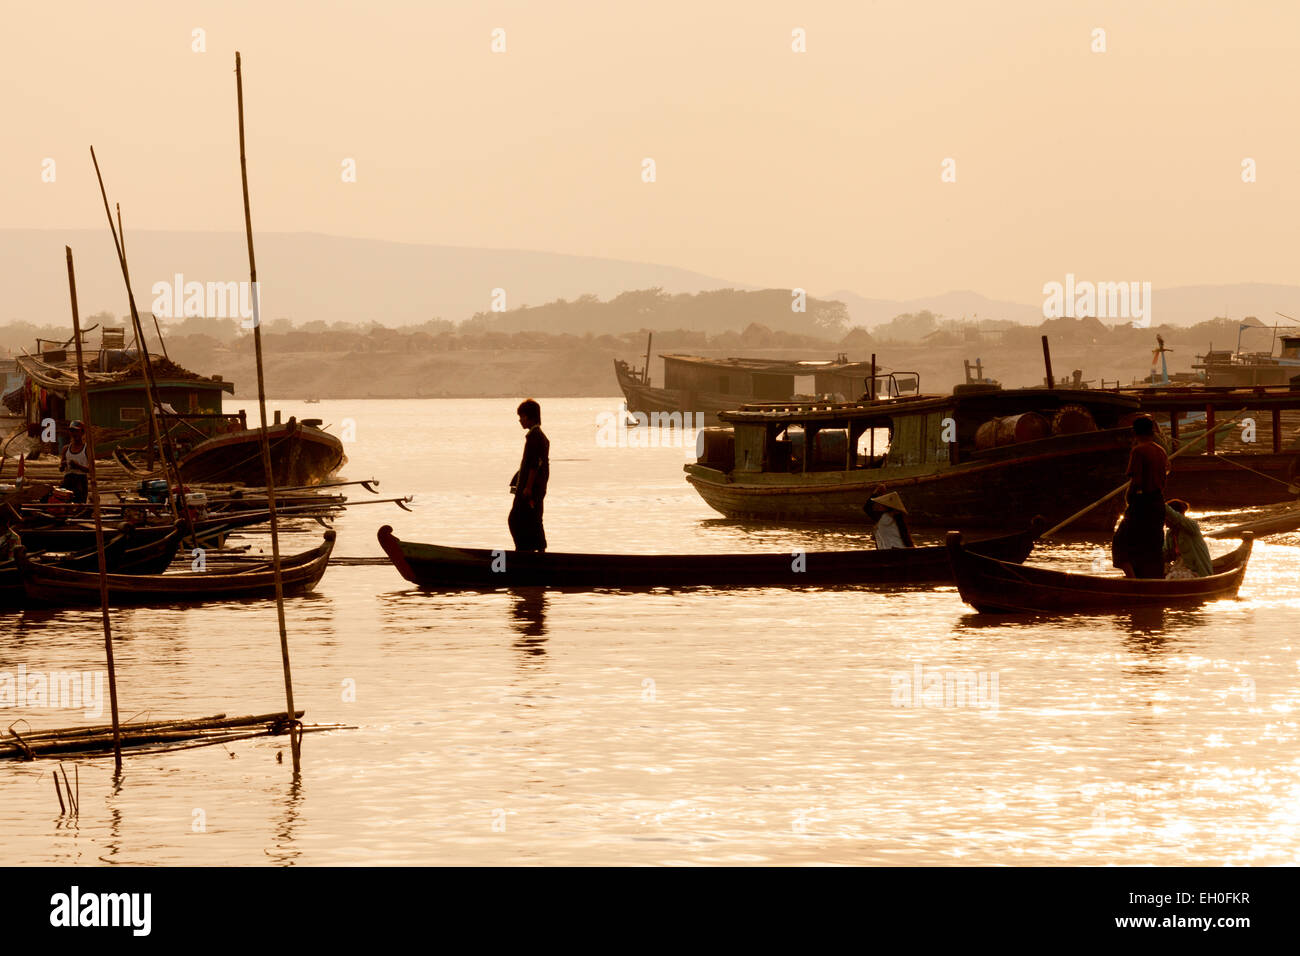 late-afternoon-scene-on-the-irrawaddy-ay